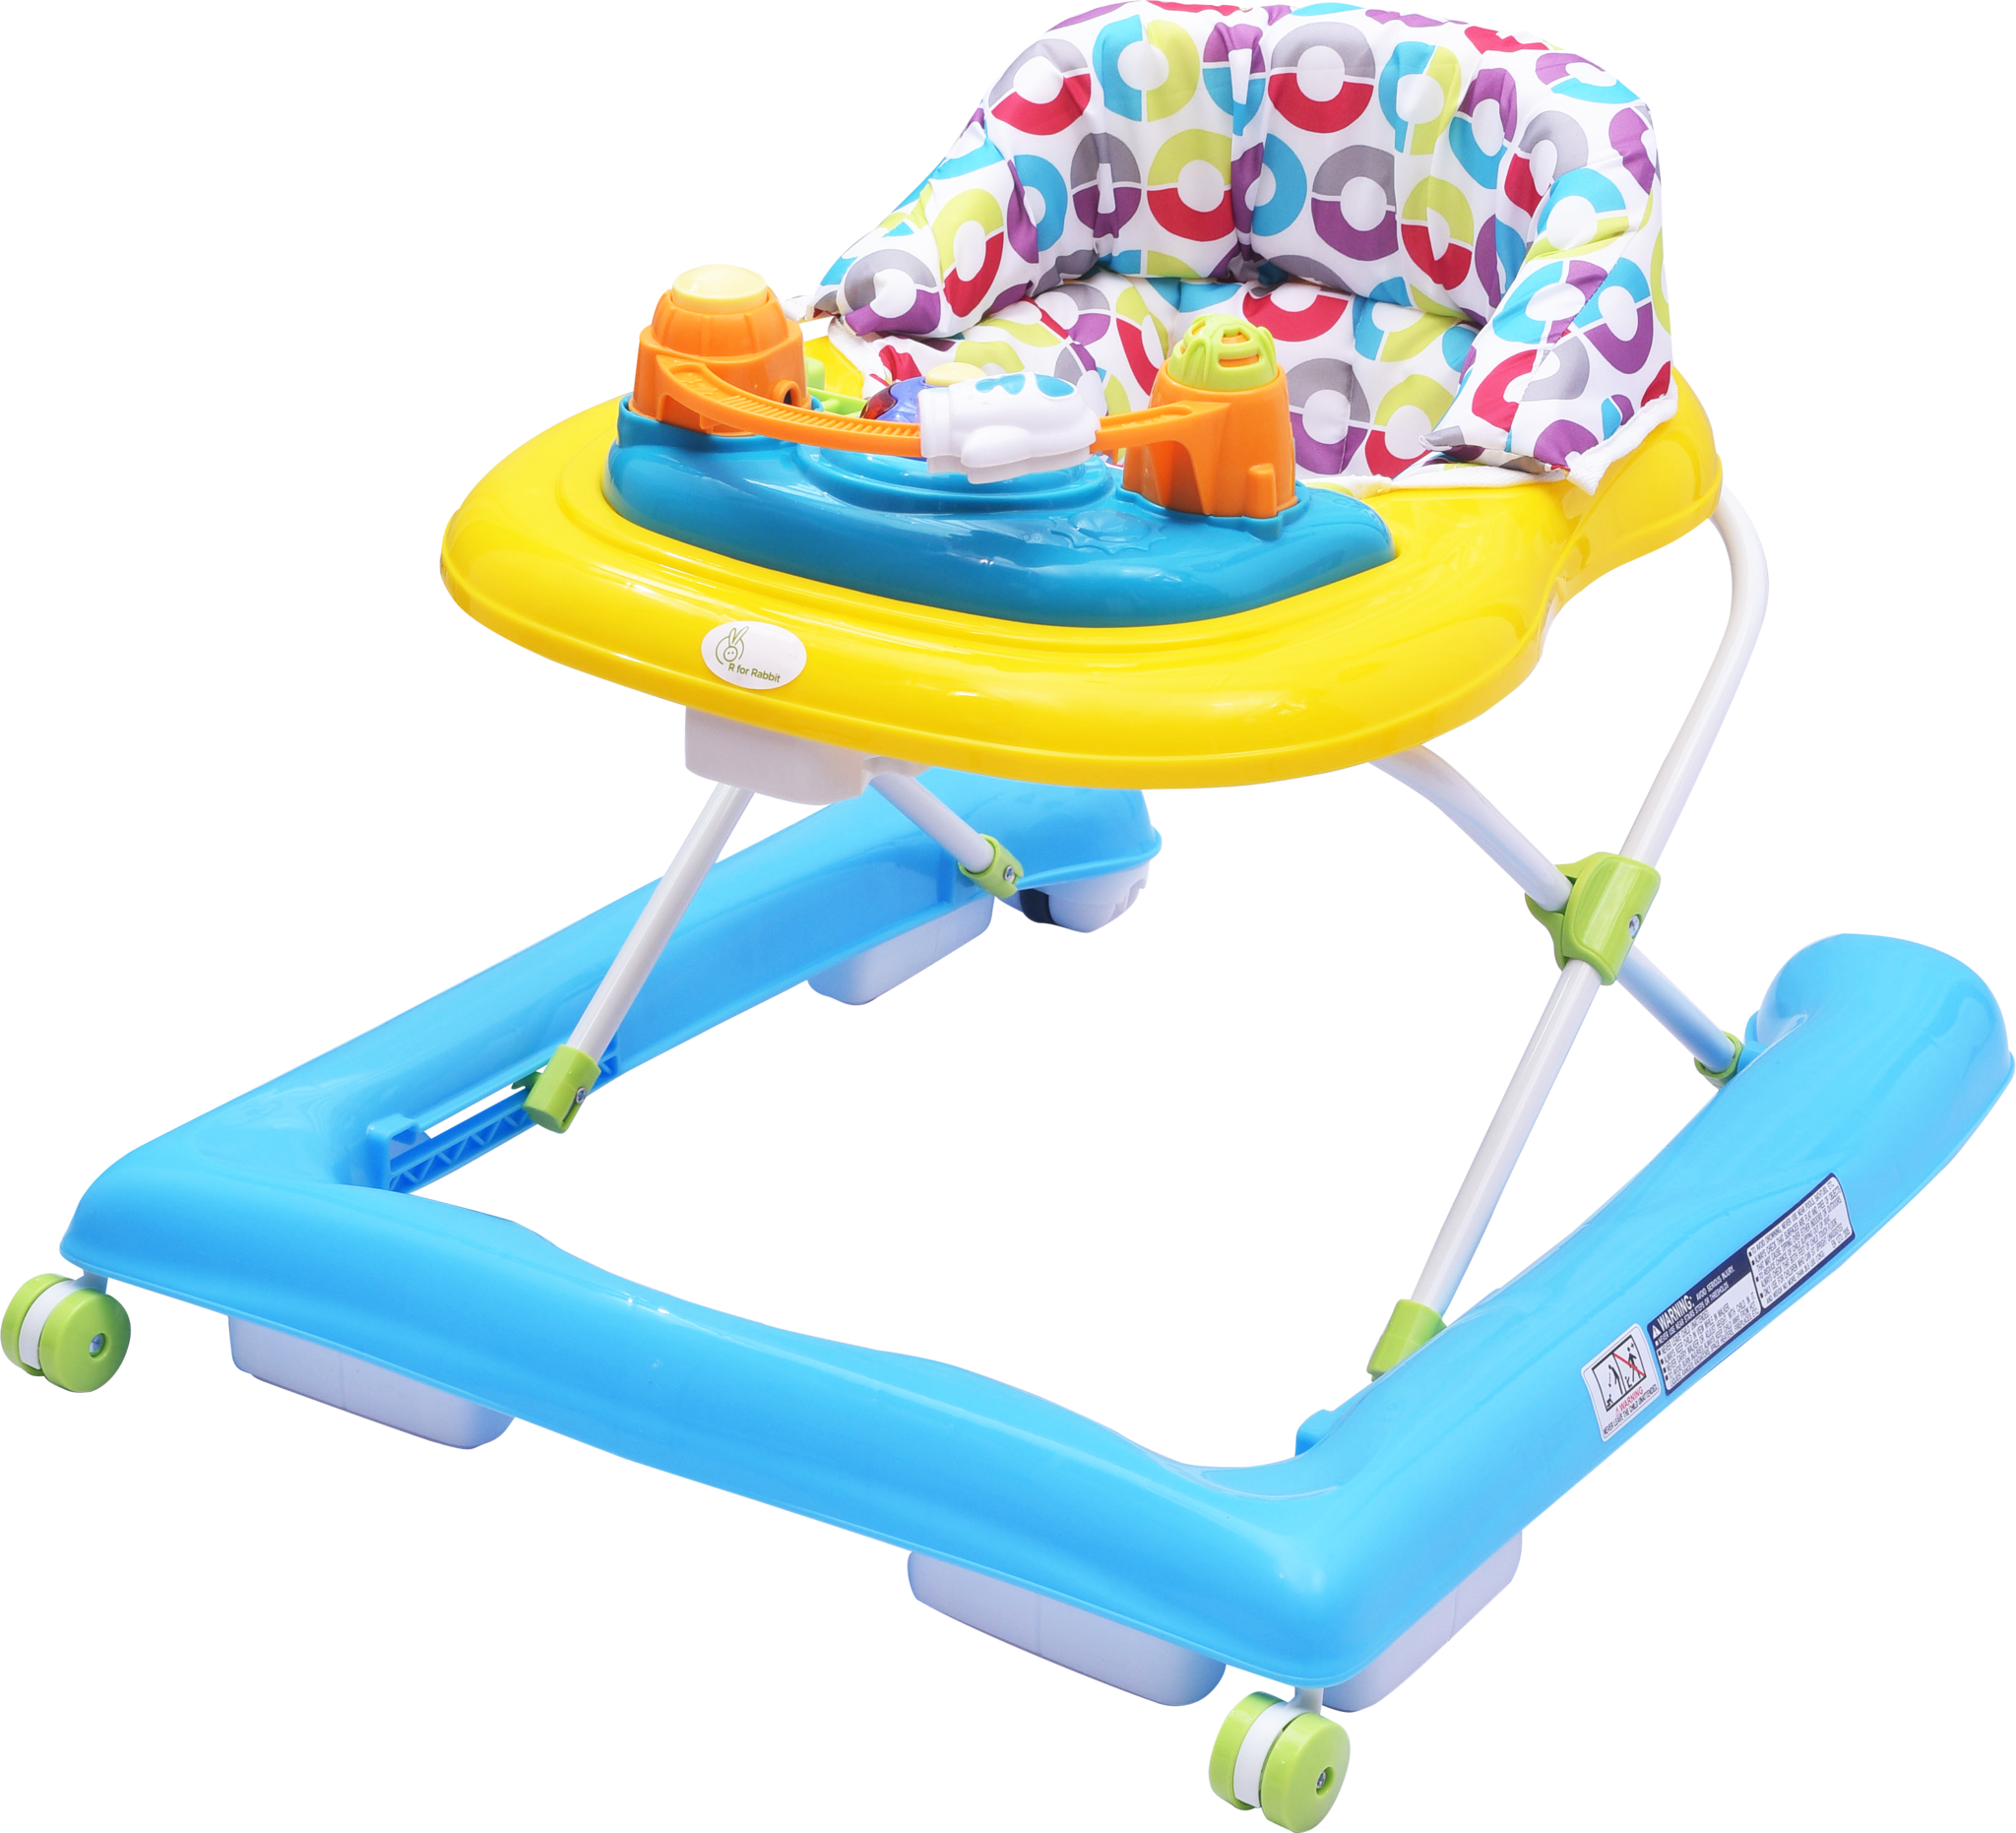 R for Rabbit Zig Zag The Anti Fall Safe Baby Walker with